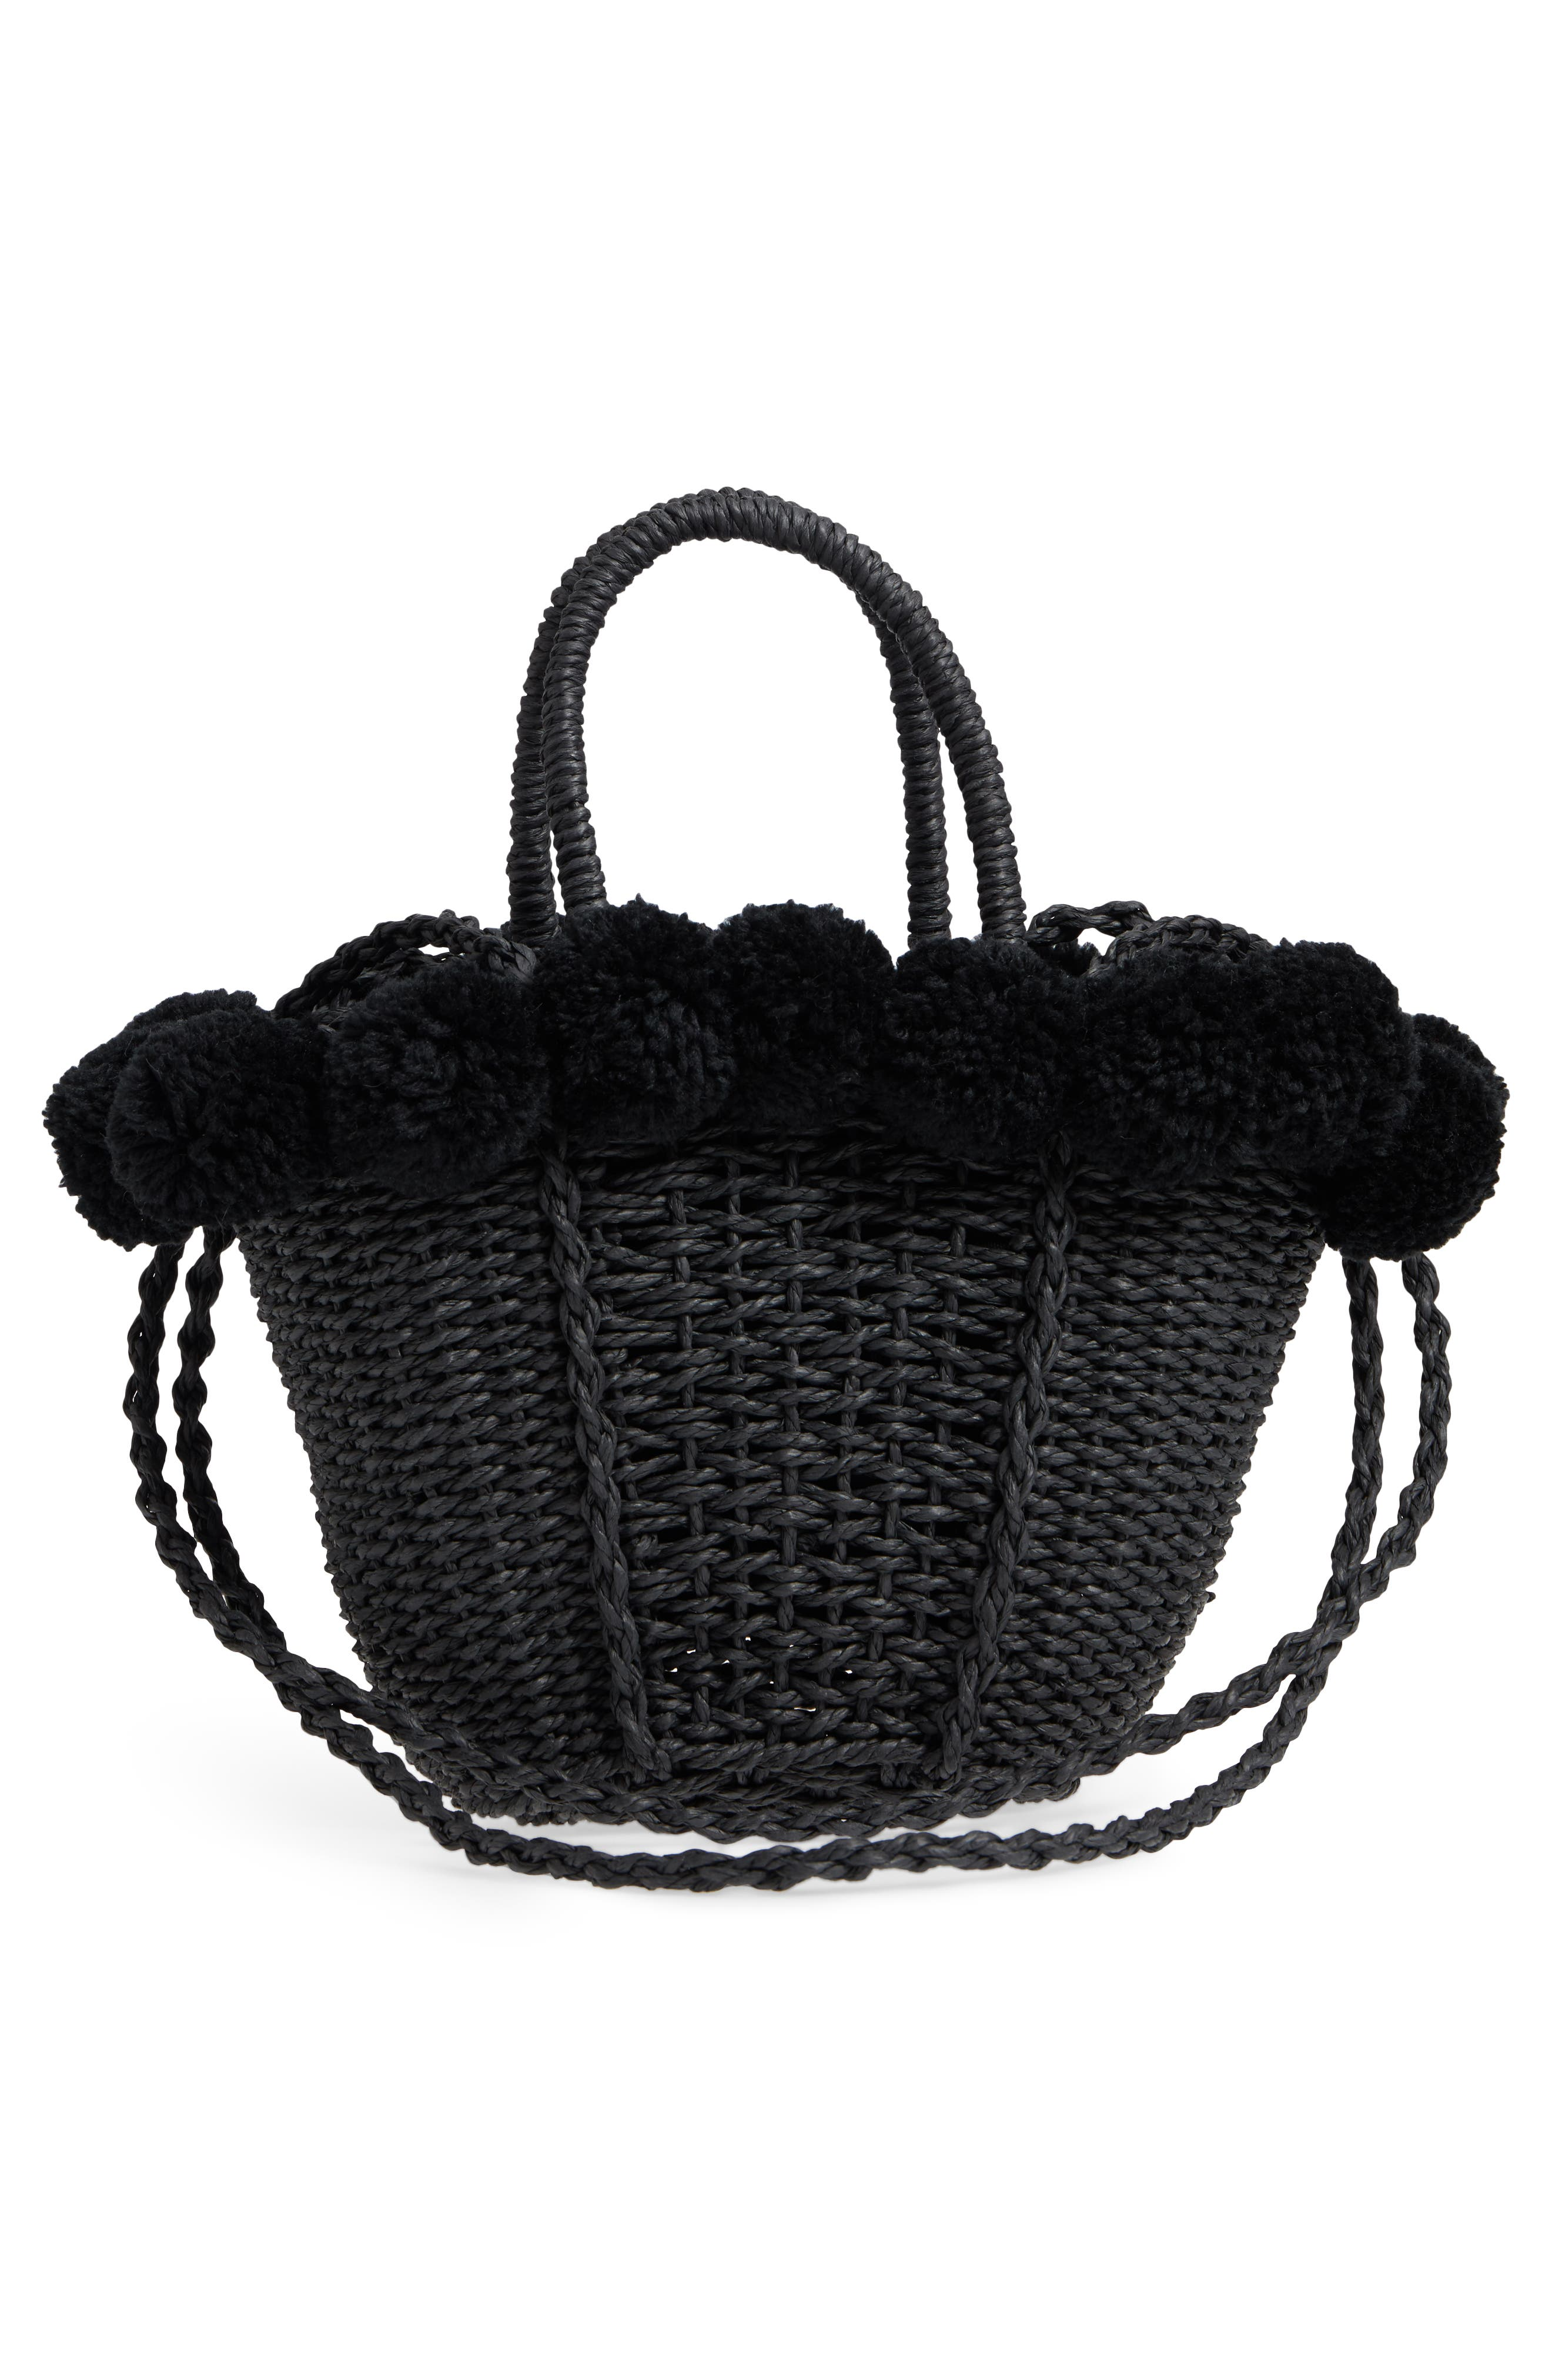 Sia Pom Straw Shopper Bag,                             Alternate thumbnail 3, color,                             001